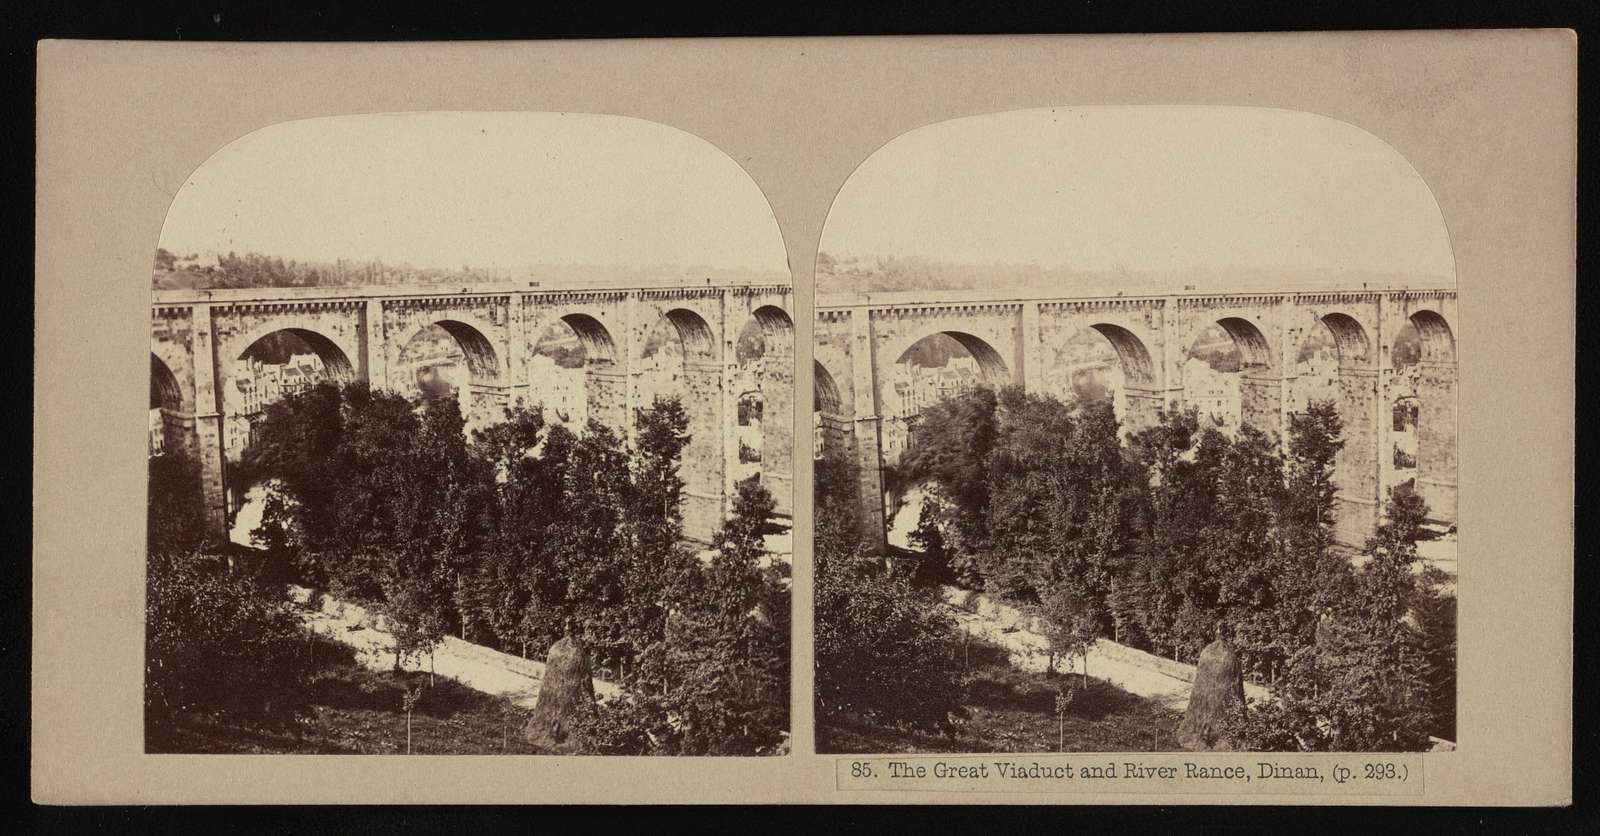 The Great viaduct and River Rance, Dinan, (p. 293.)